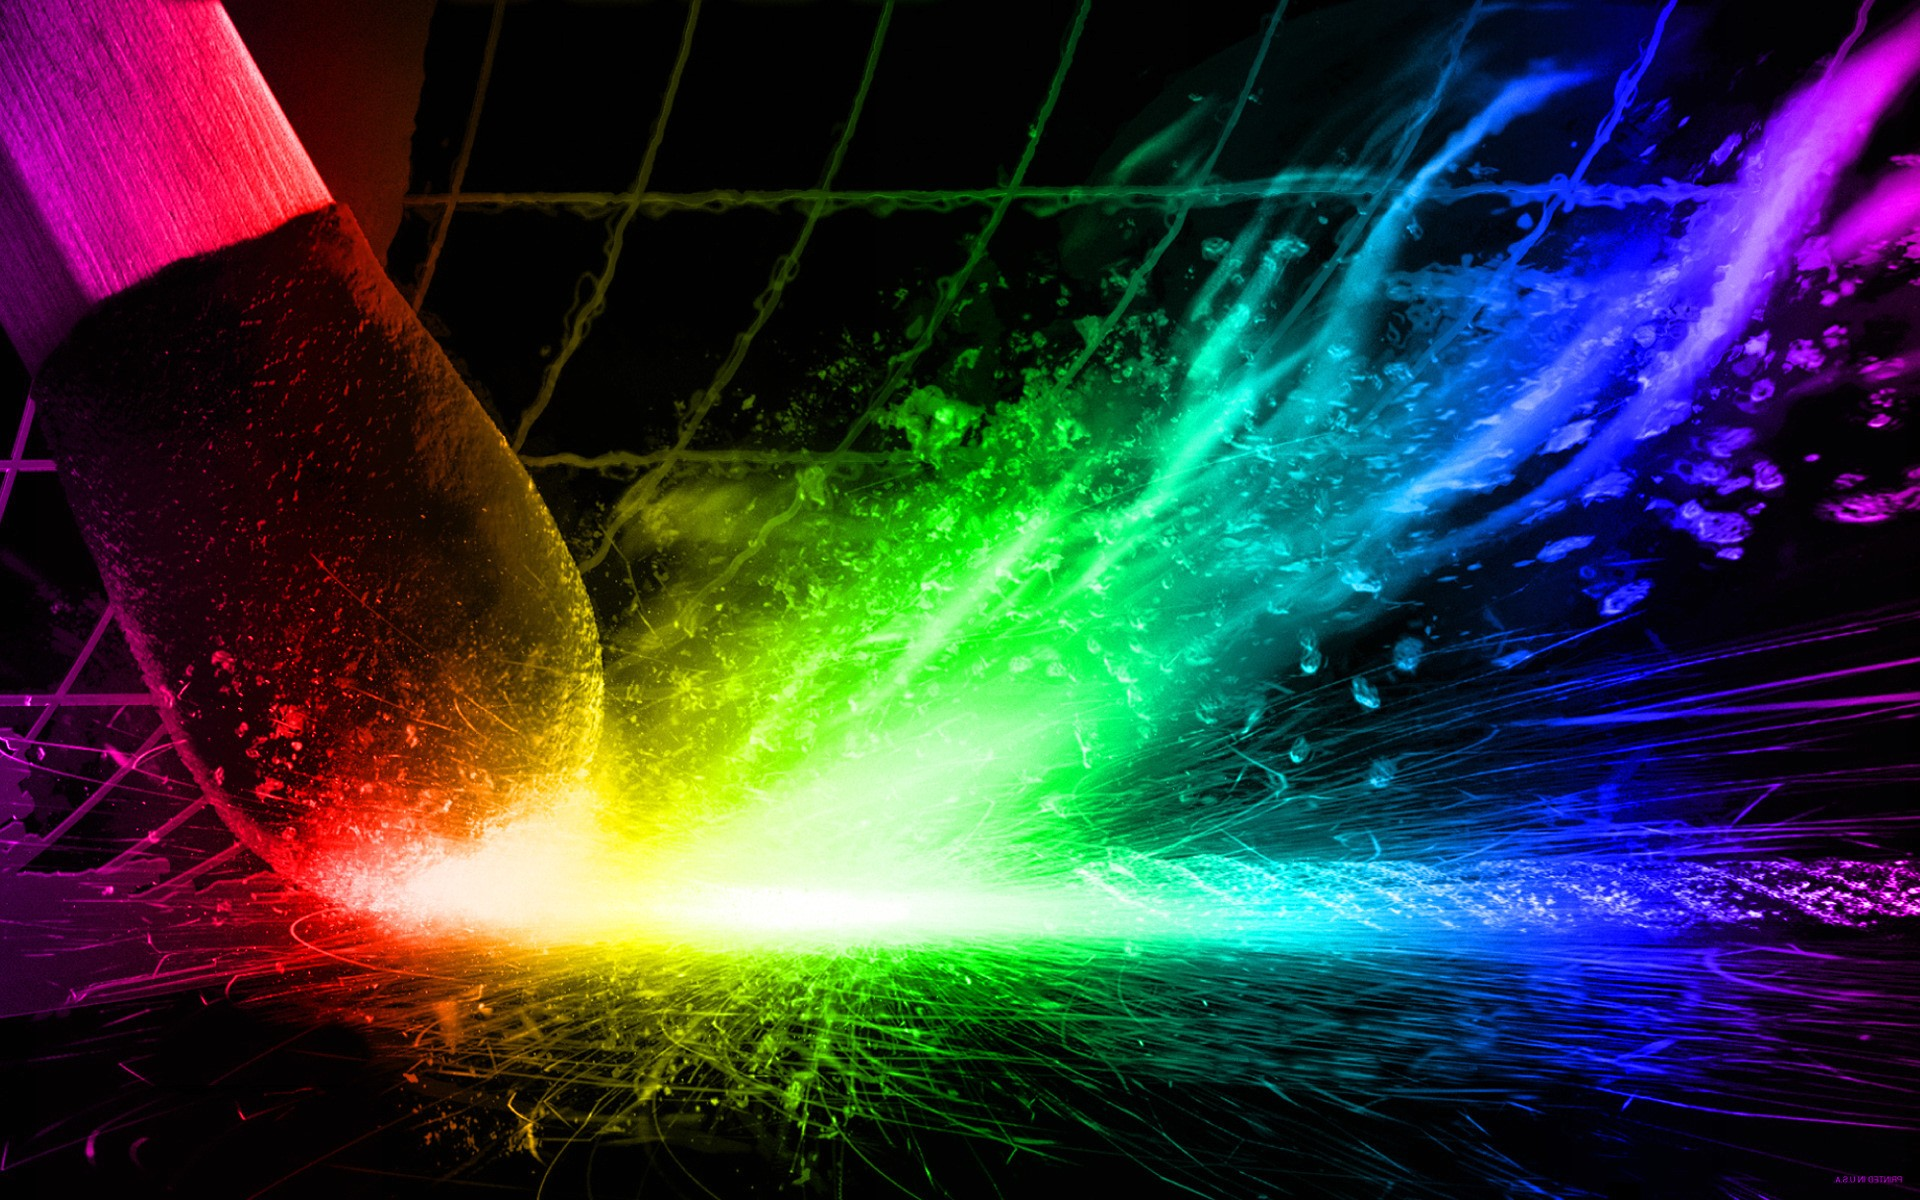 Background Designs HD Wallpapers In HD Stock Photos 1920x1200